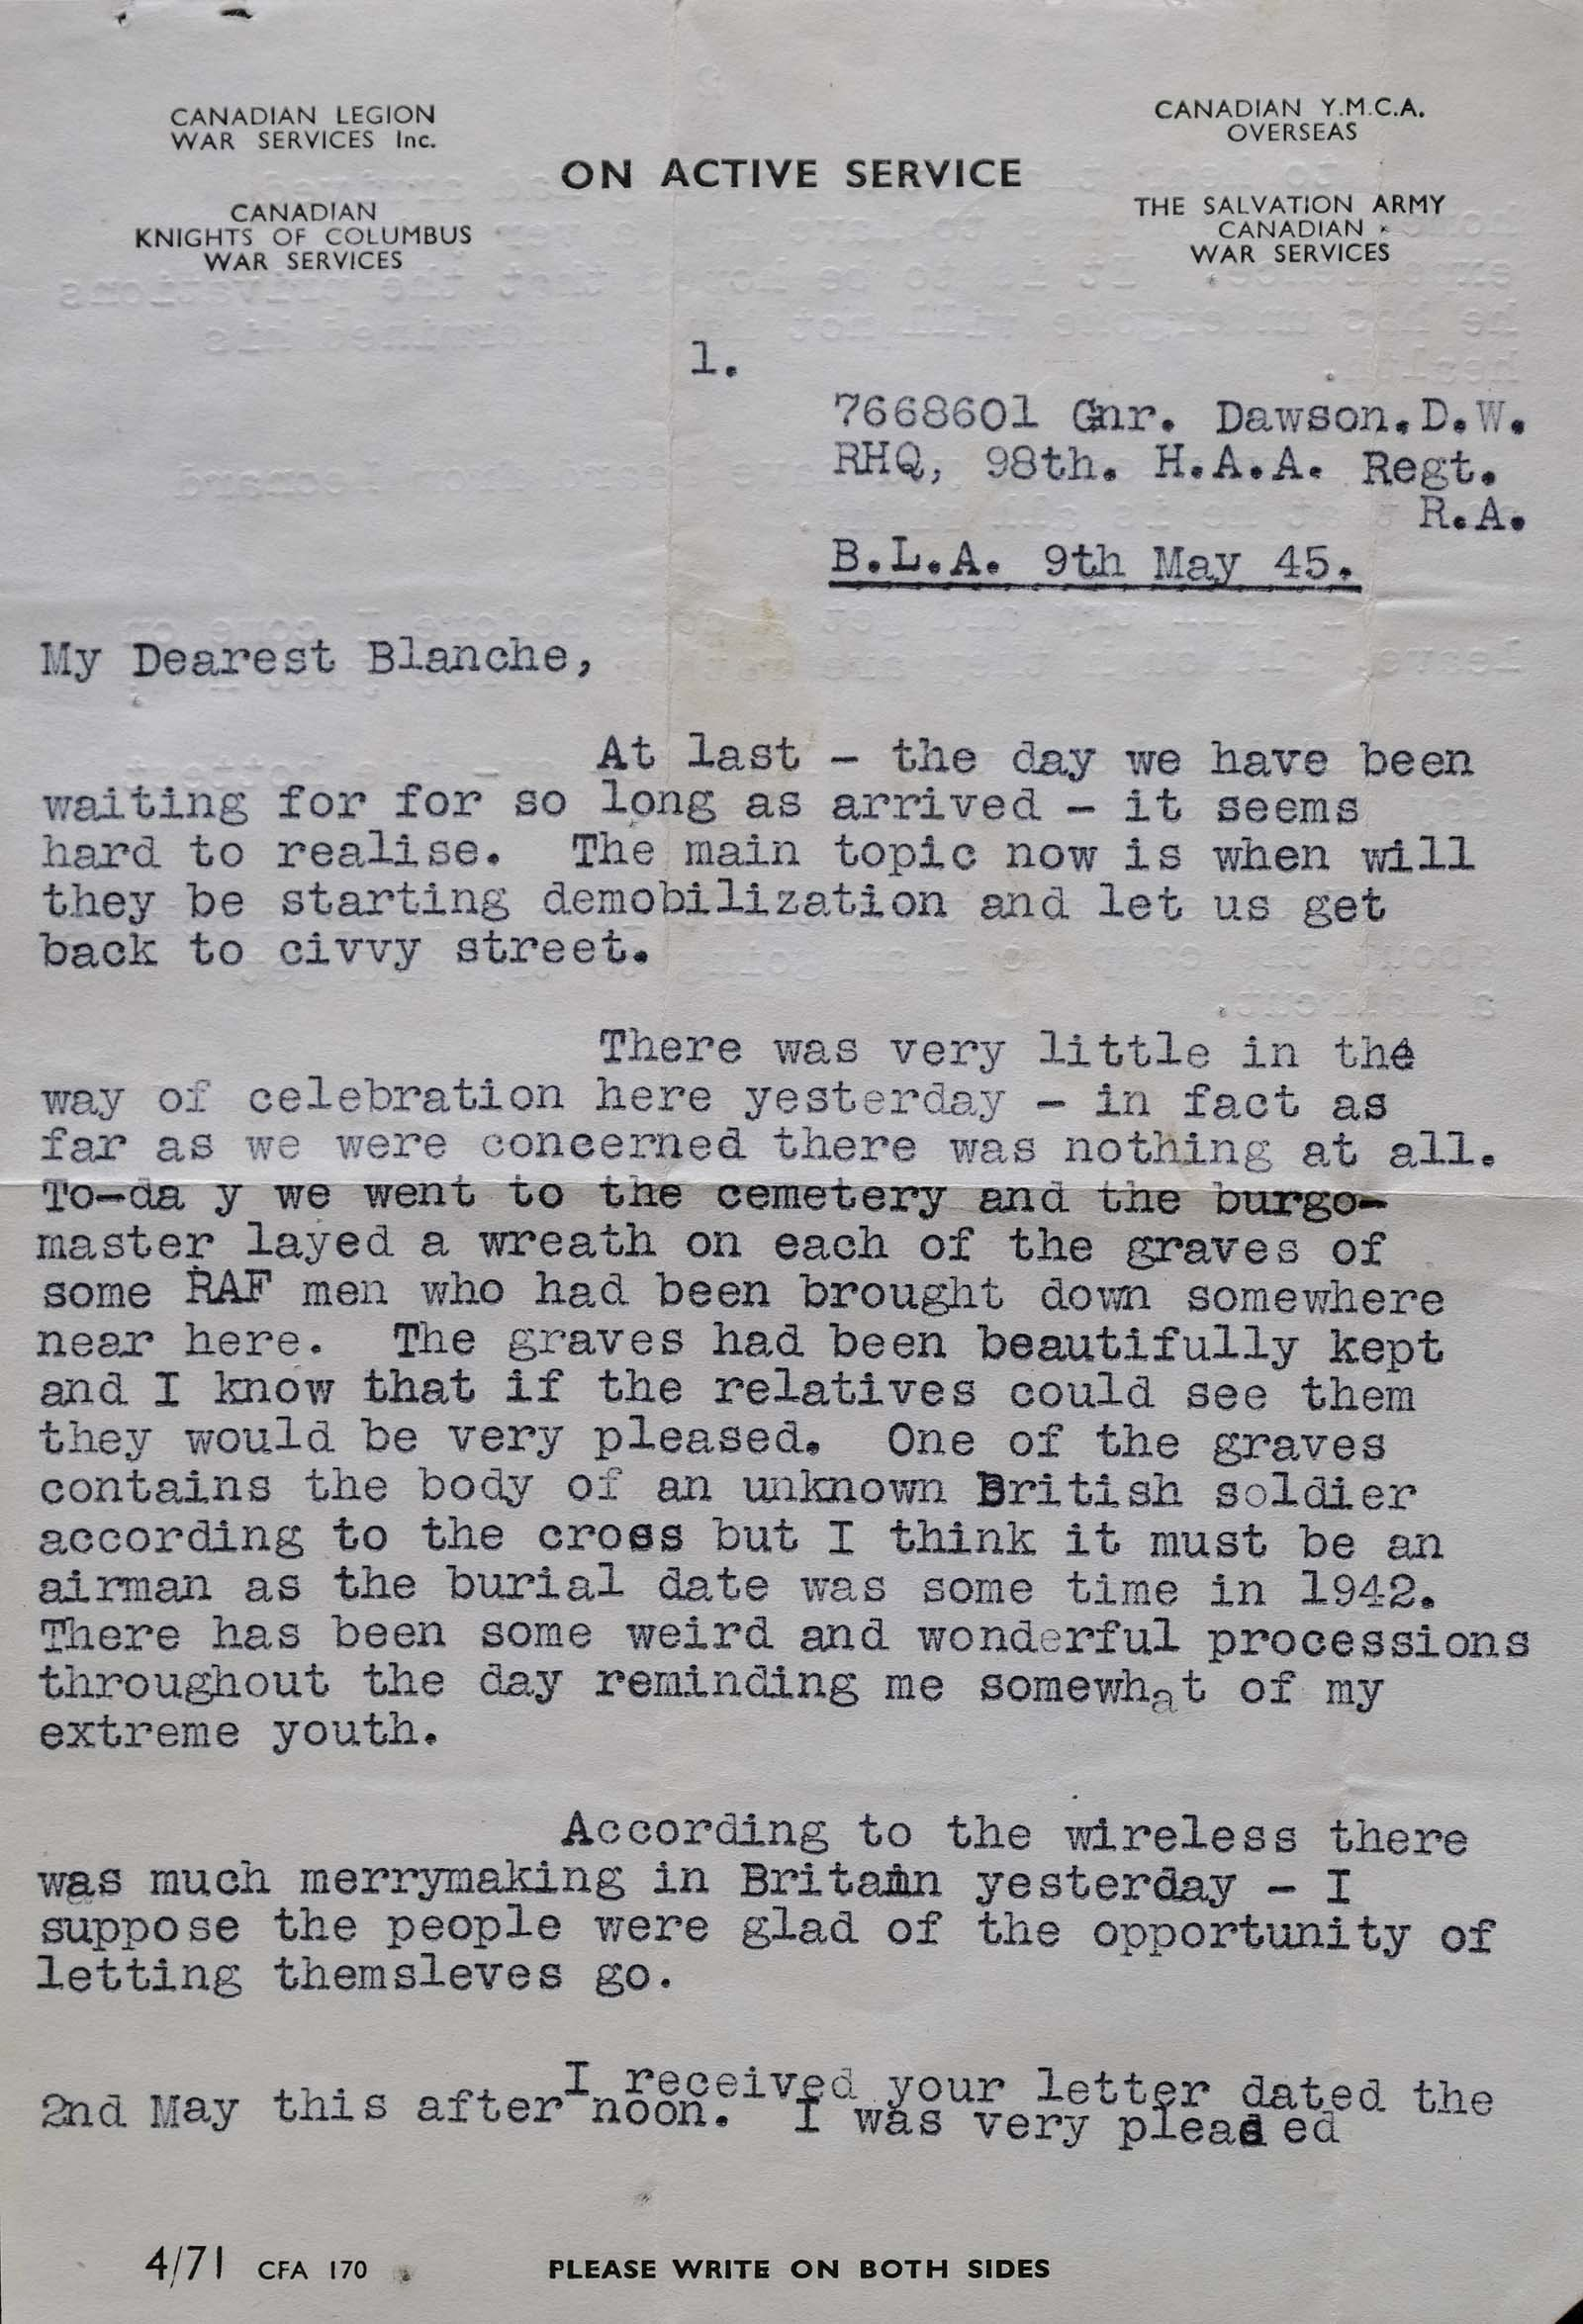 photograph of a typed letter